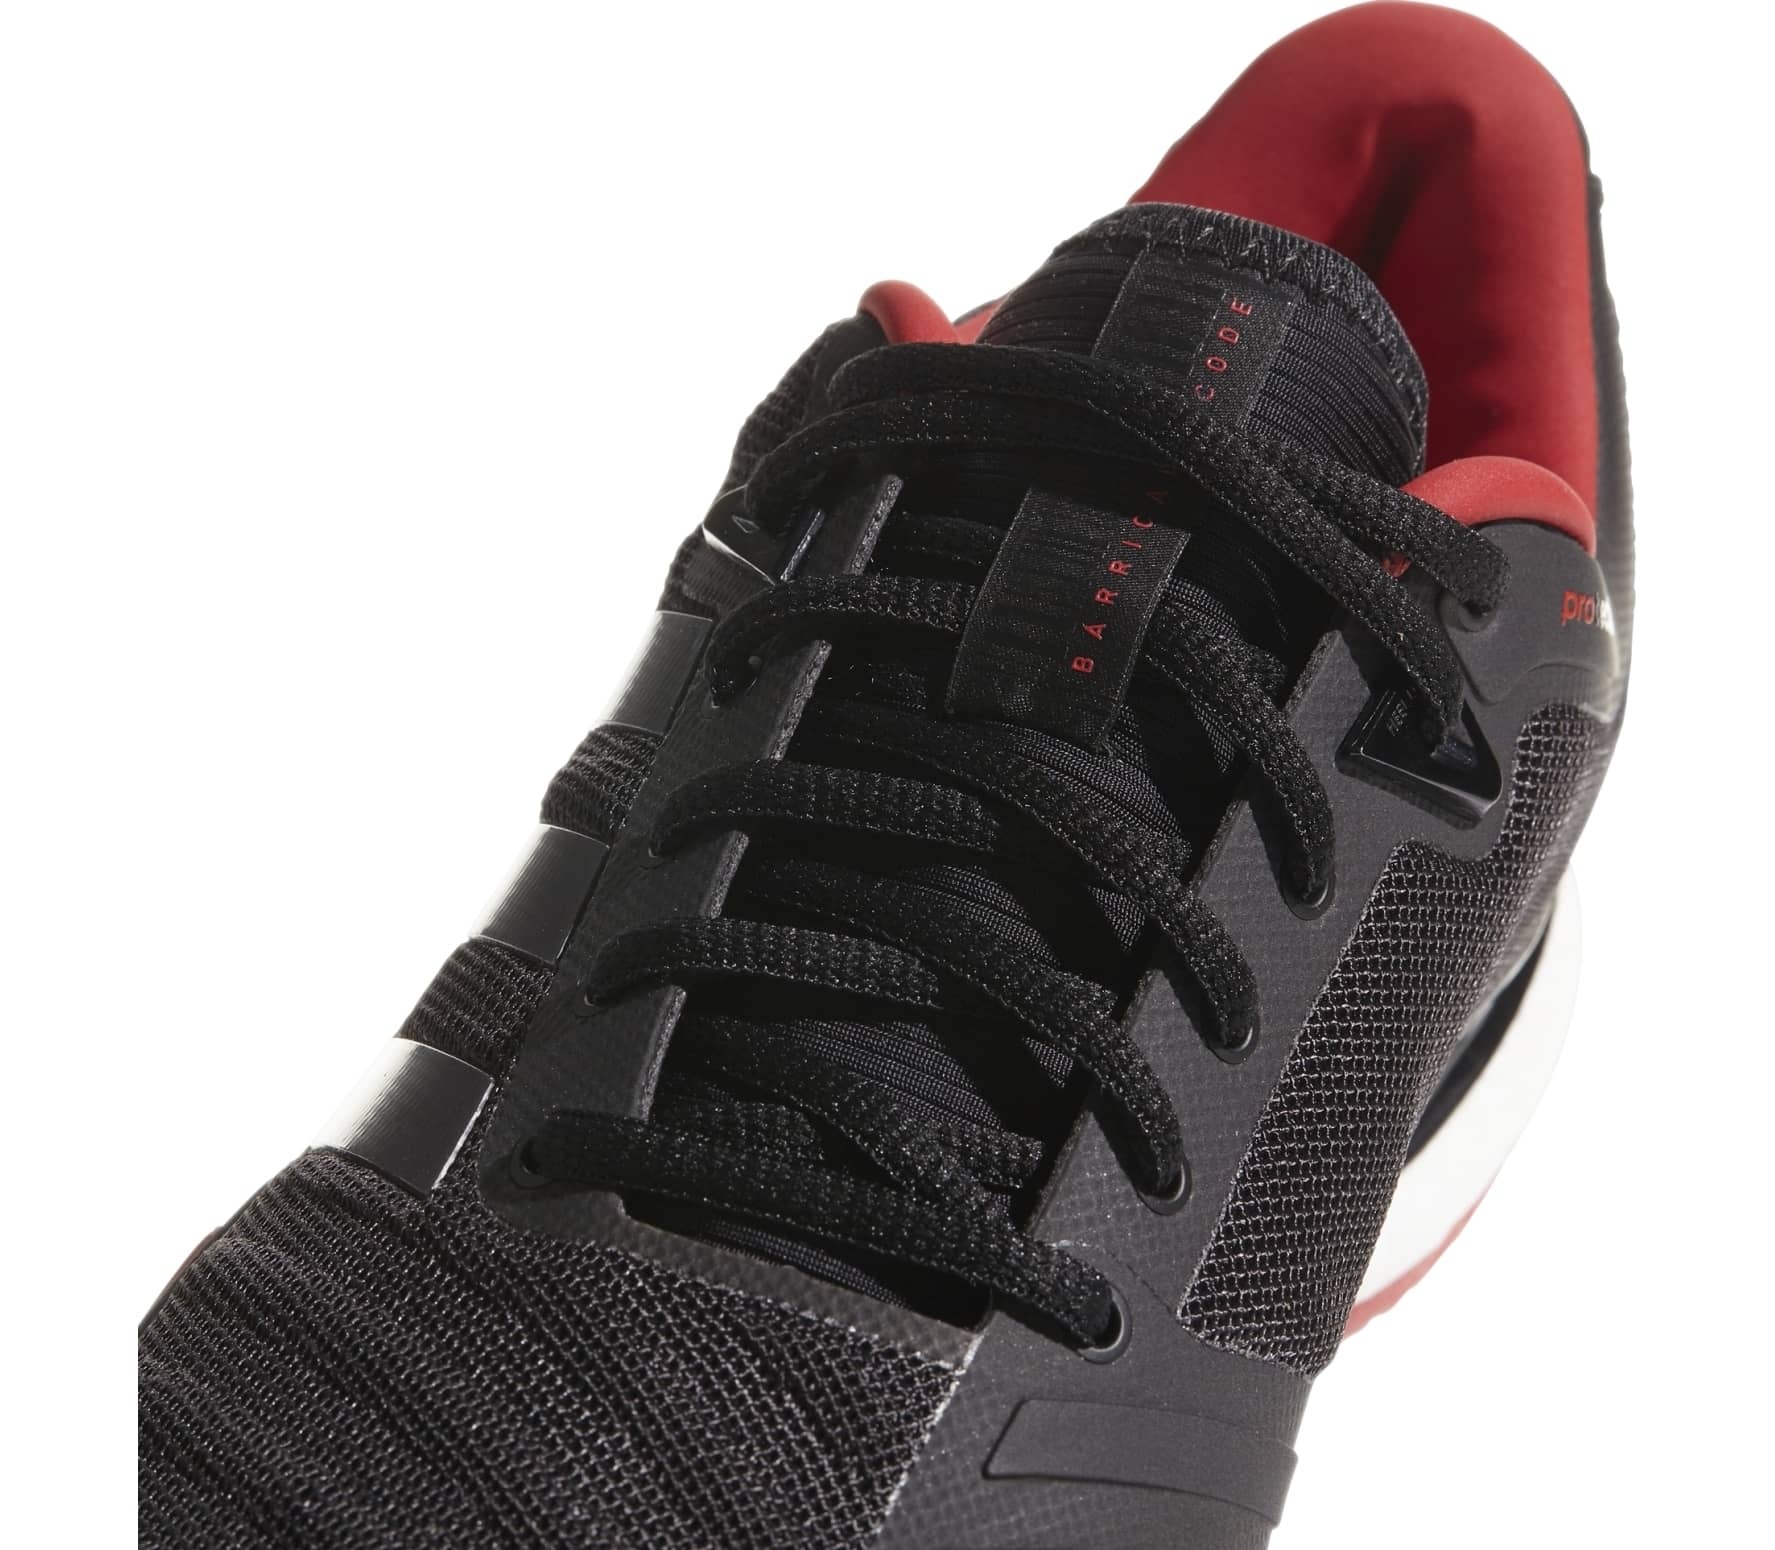 hot sale online e5069 f9d19 Adidas - Barricade 2018 Boost men s tennis shoes (black red)